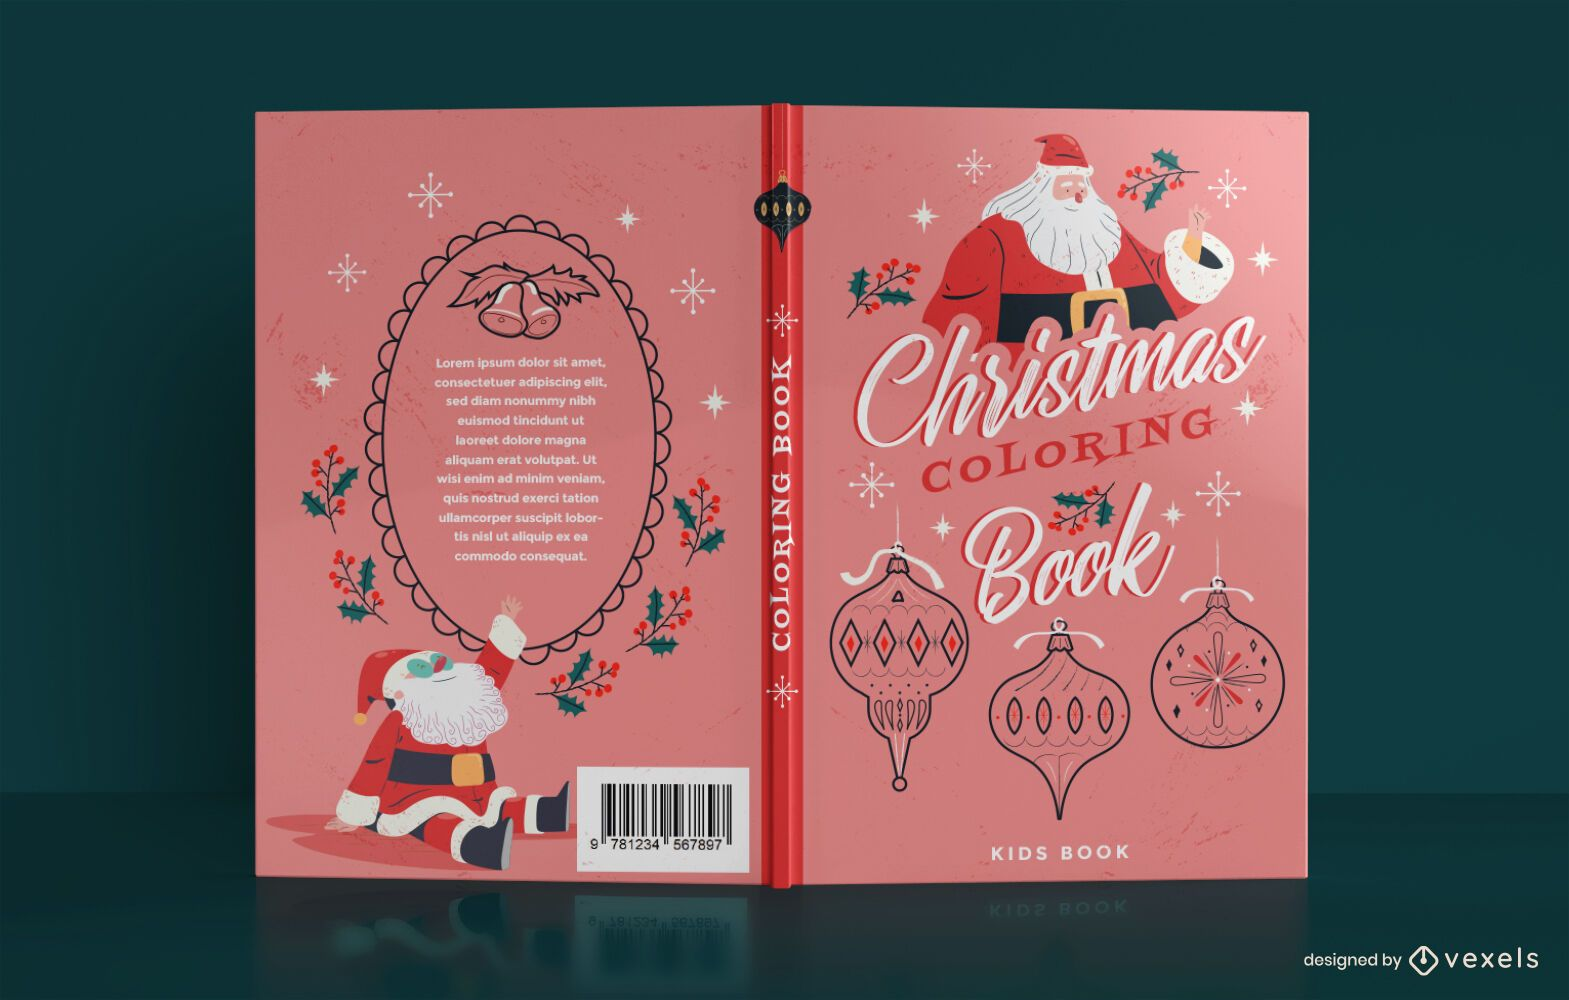 Christmas coloring book cover design